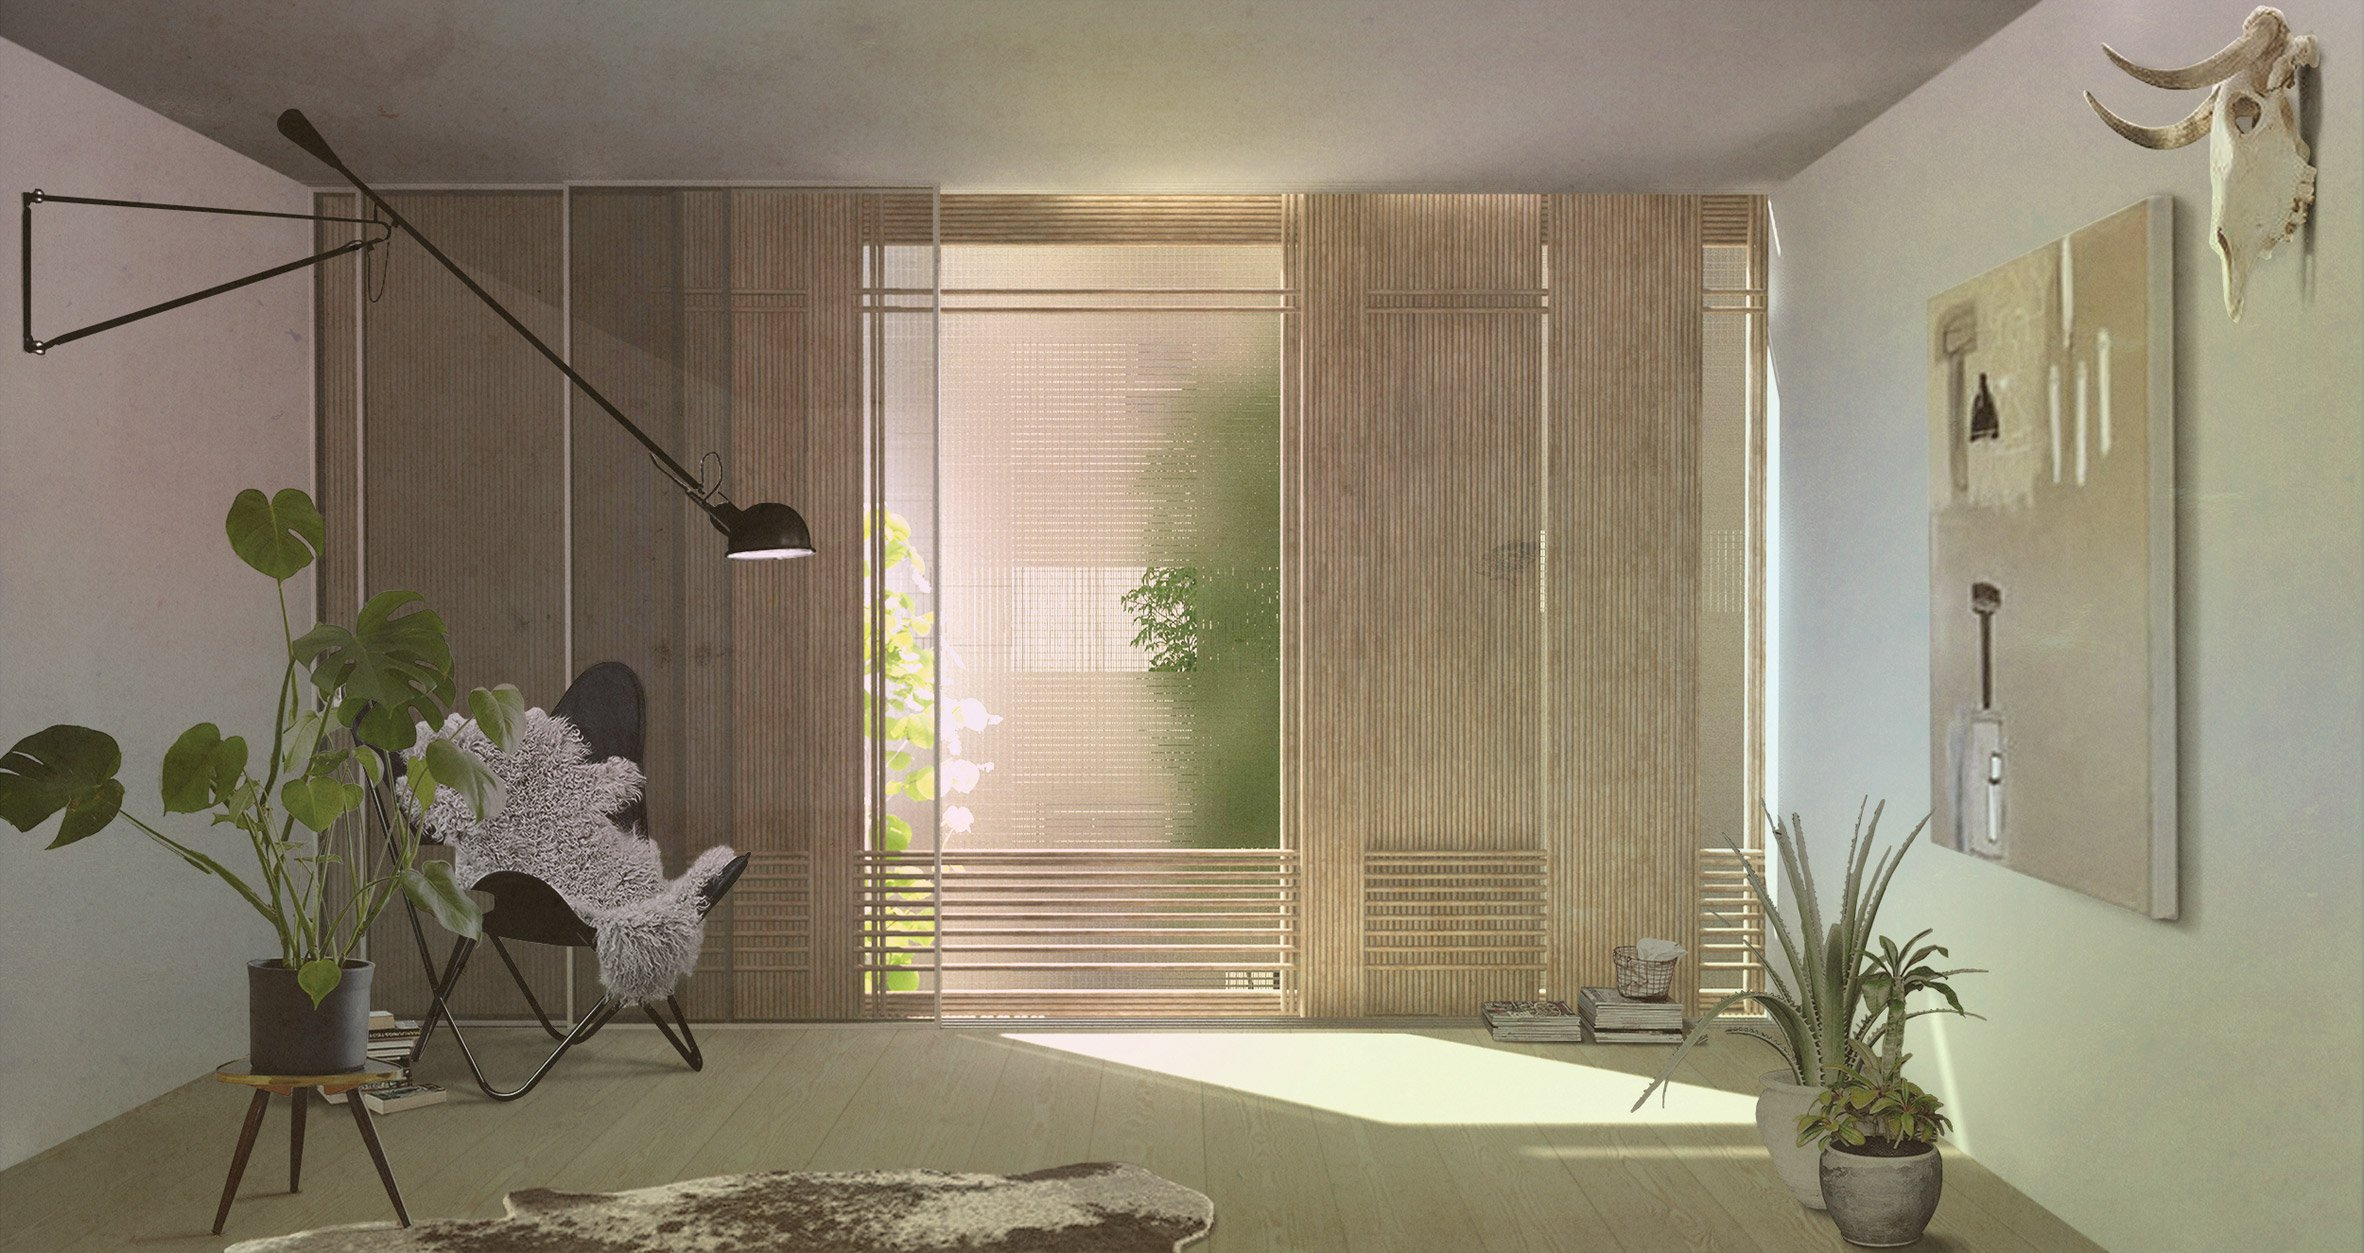 Toto presents the work of Japanese architects and students